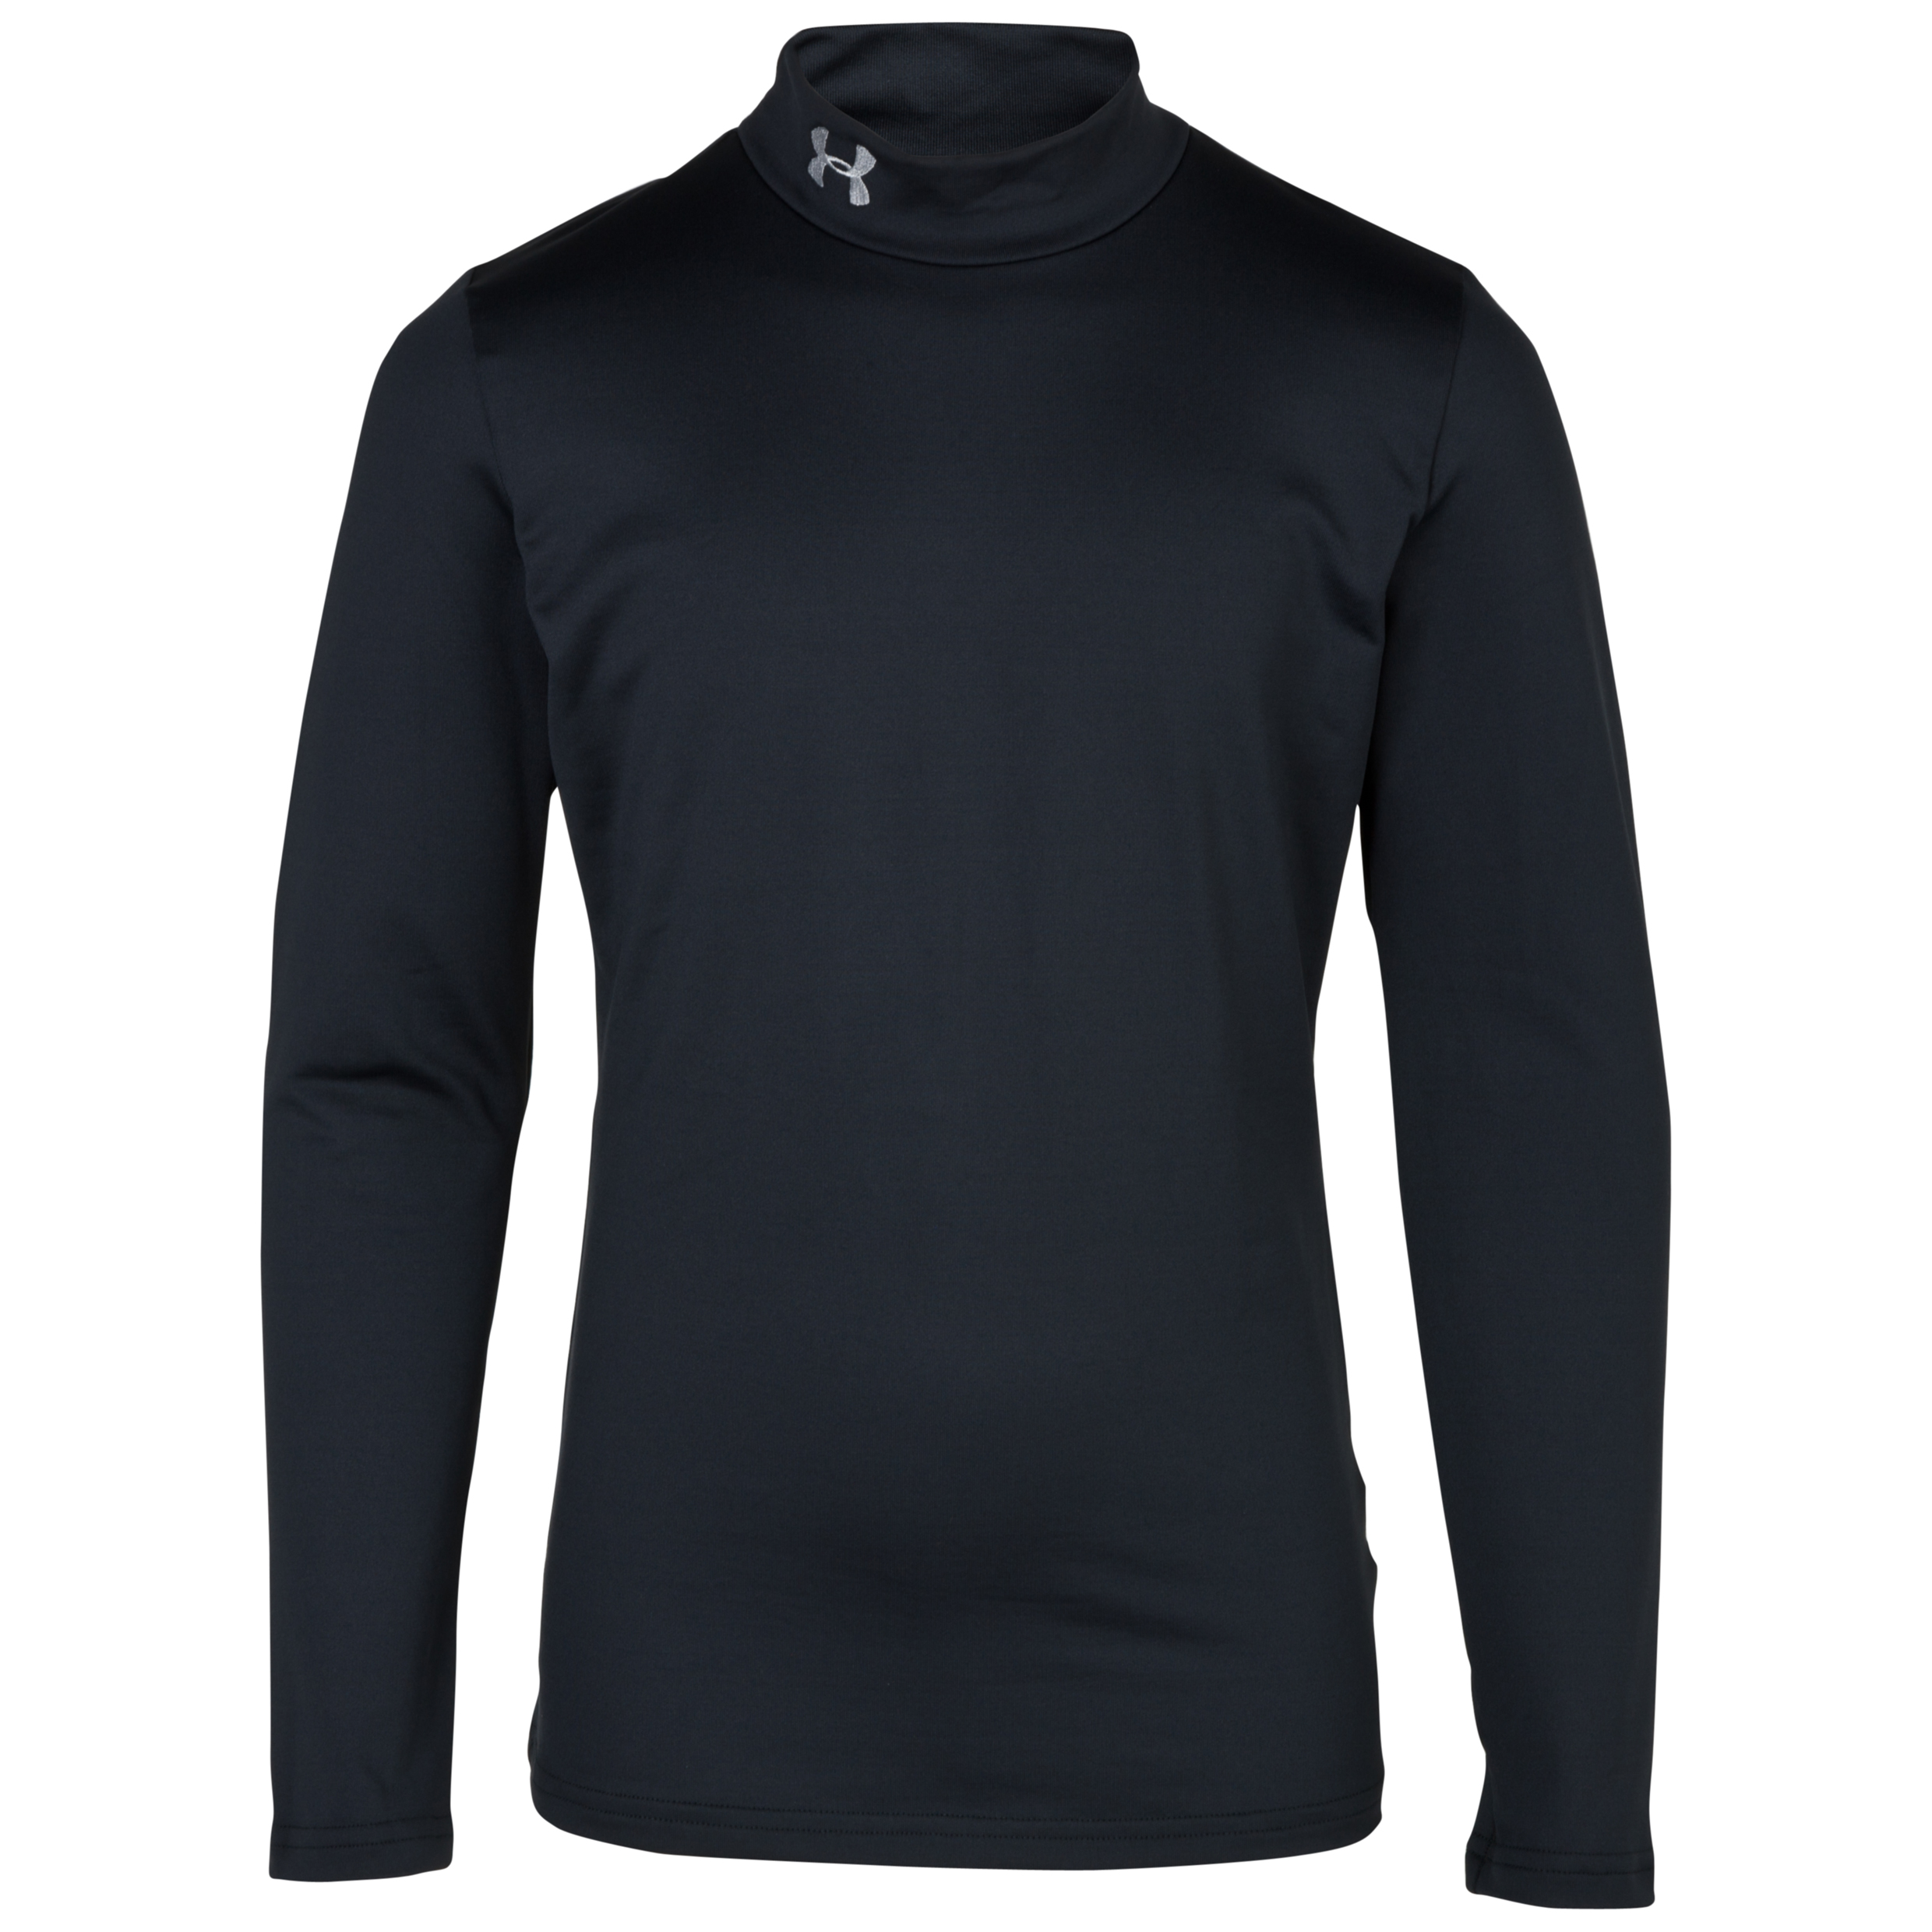 Under Armour Evo Coldgear Mock Base Layer Top - Long Sleeve - Kids Black